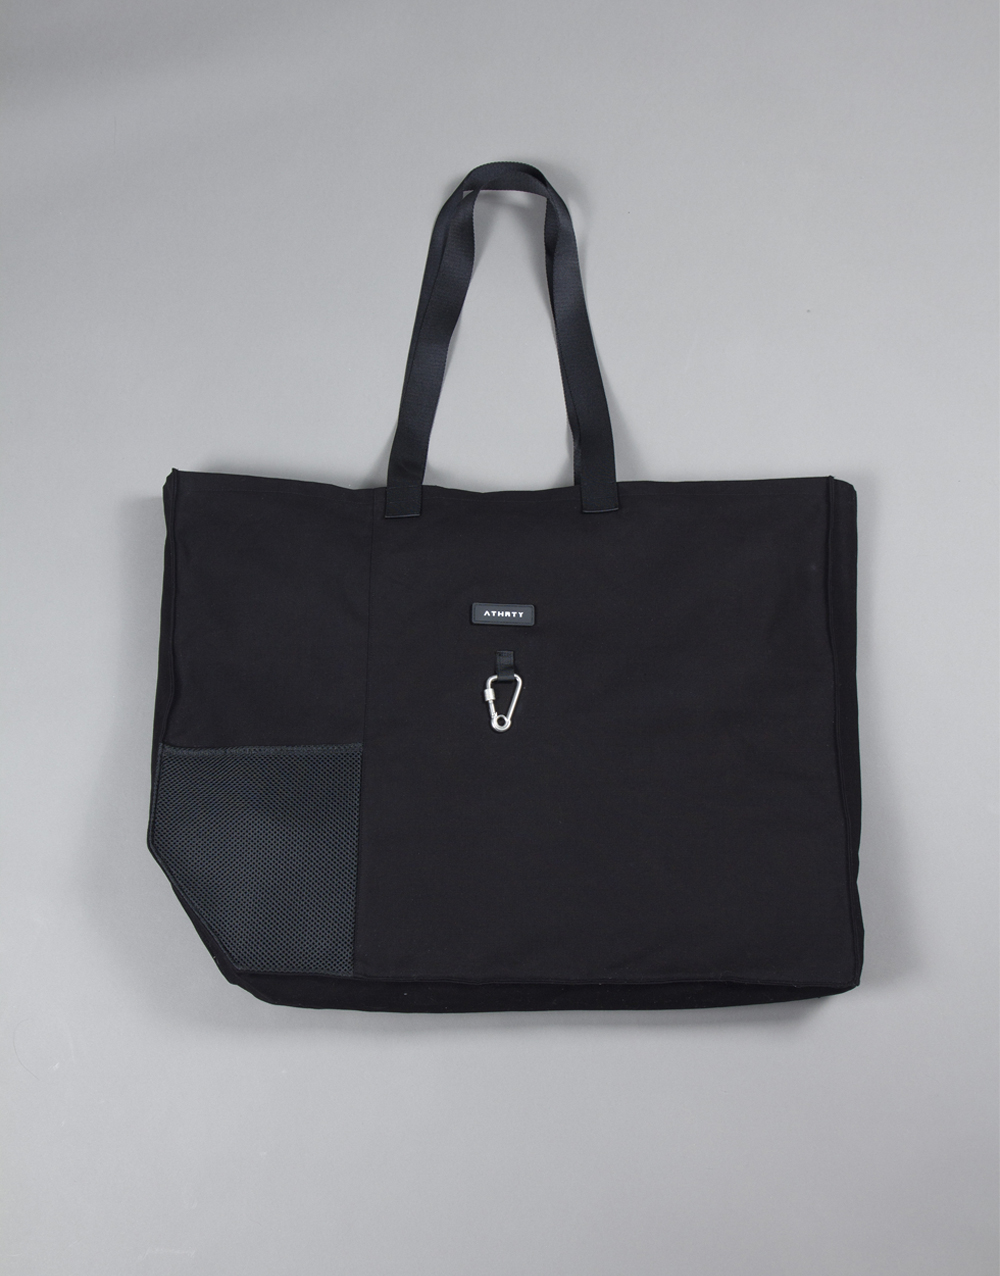 ATHRTY_Nobunaga_large_tote_bag_black